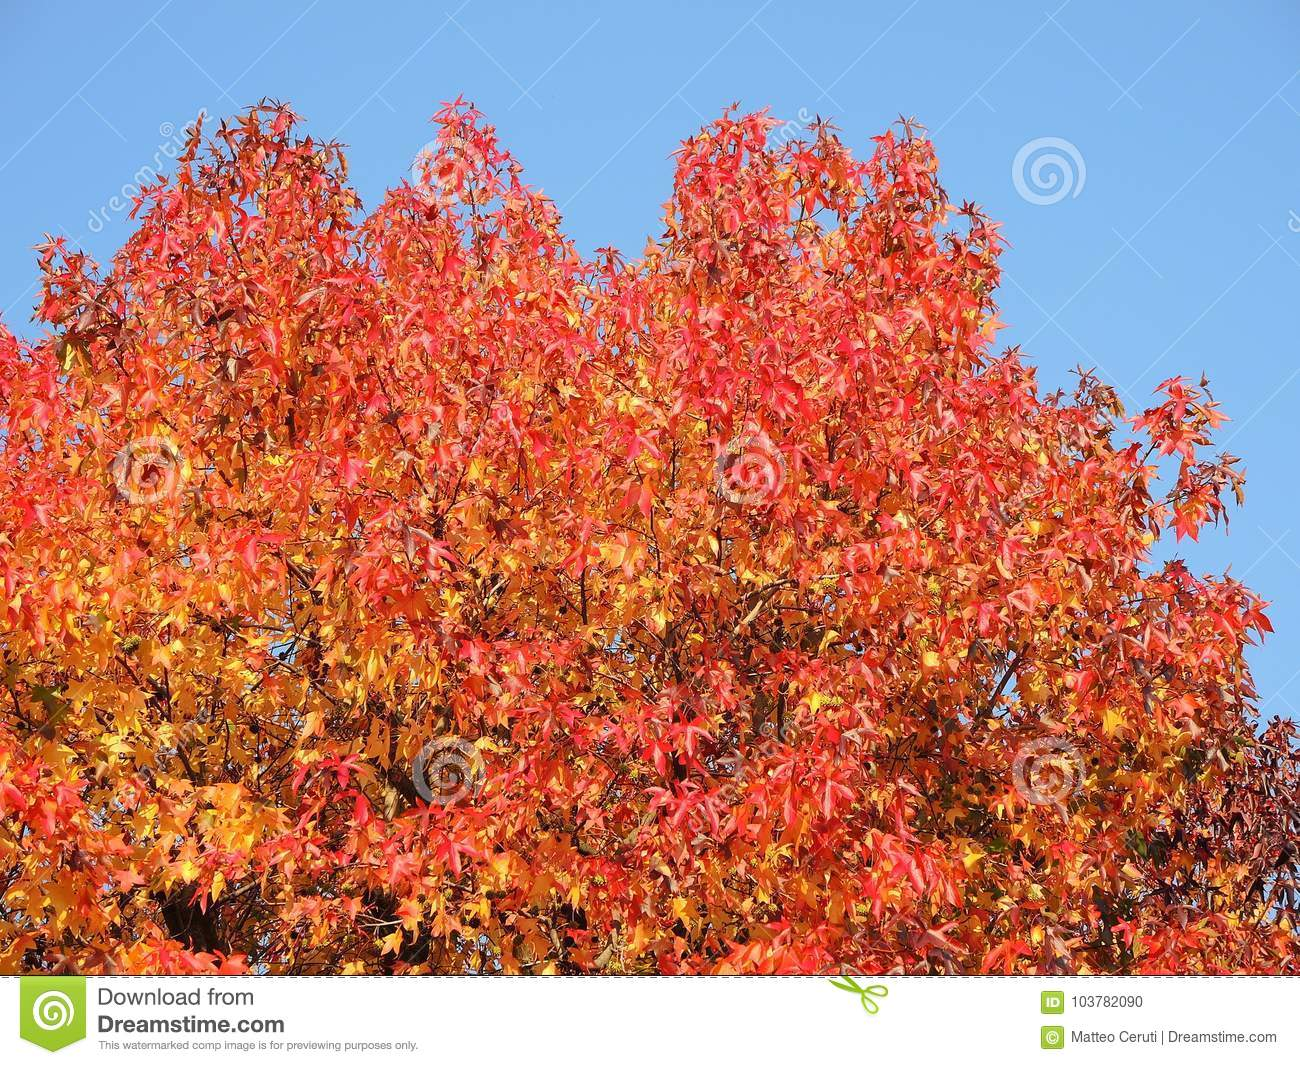 American sweetgum, in fall season with Its red, orange and yellow leaves